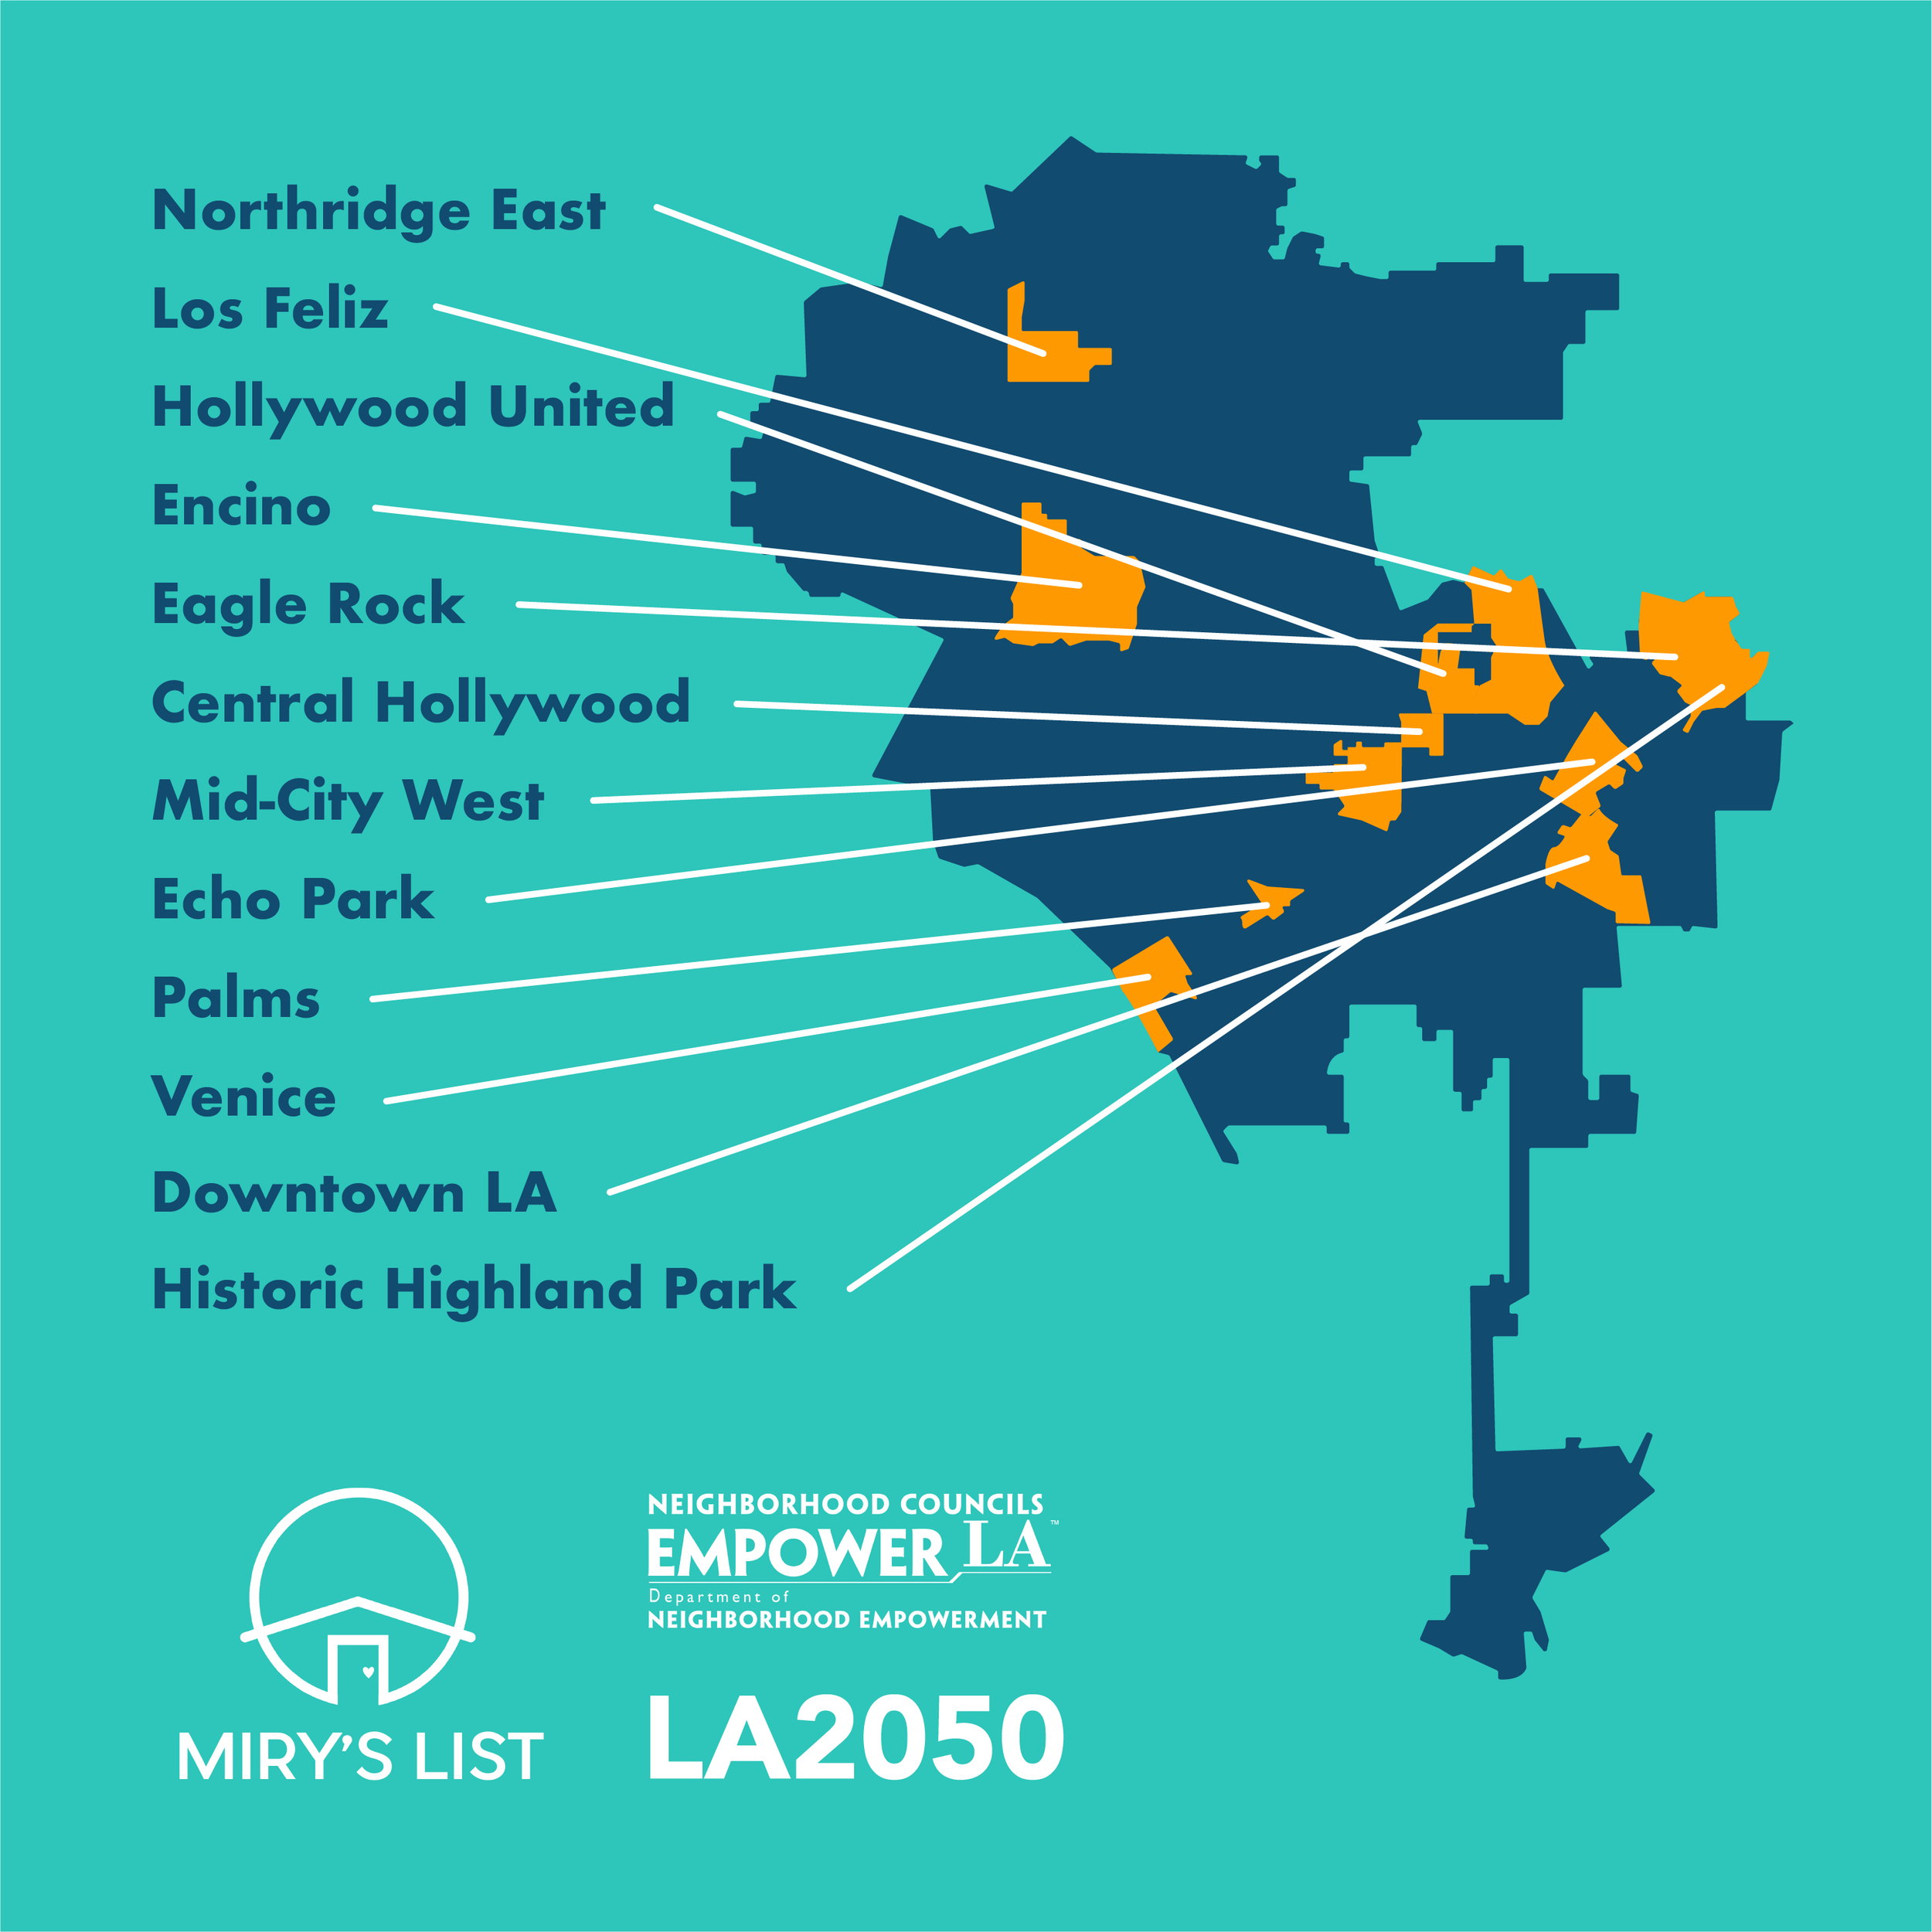 In 2019, 14 neighborhood councils voted YES to participate in Welcome, Neighbor to make LA more welcoming for resettling Angelenos